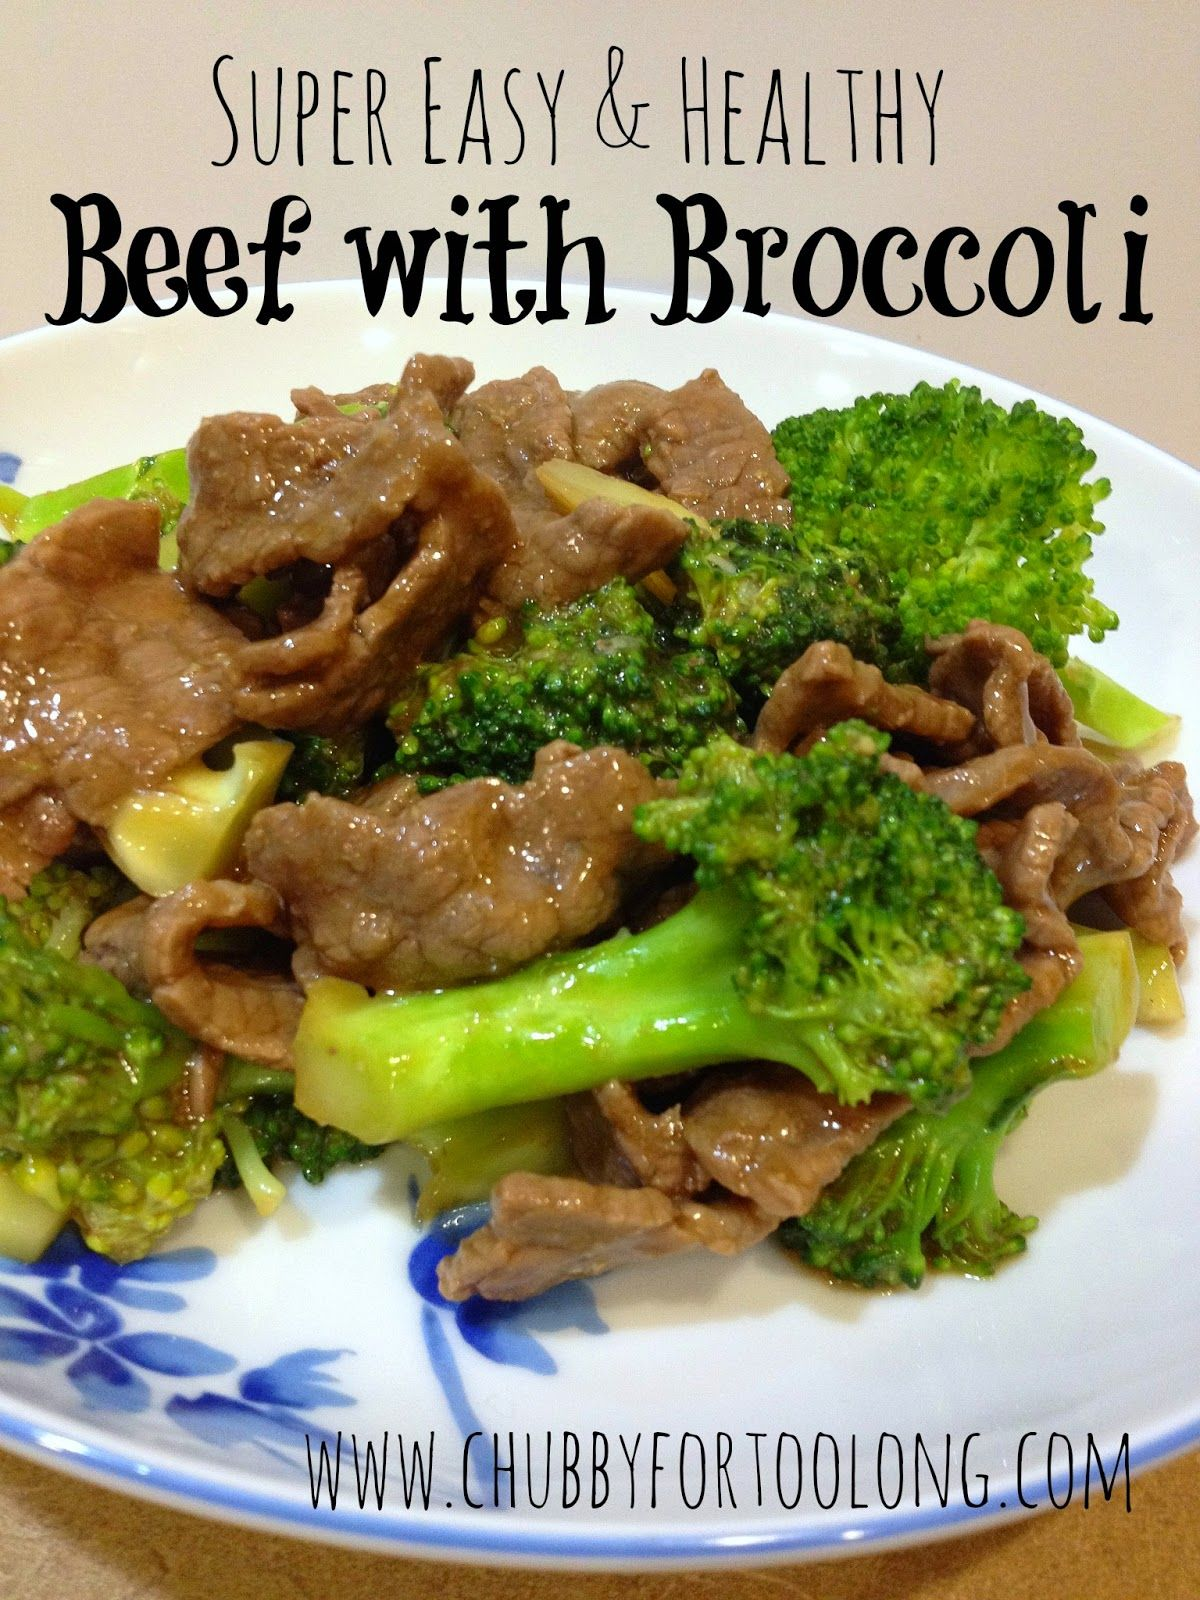 Chubby for too long!: Easy and Healthy Beef with Broccoli Recipe! #beefandbroccoli